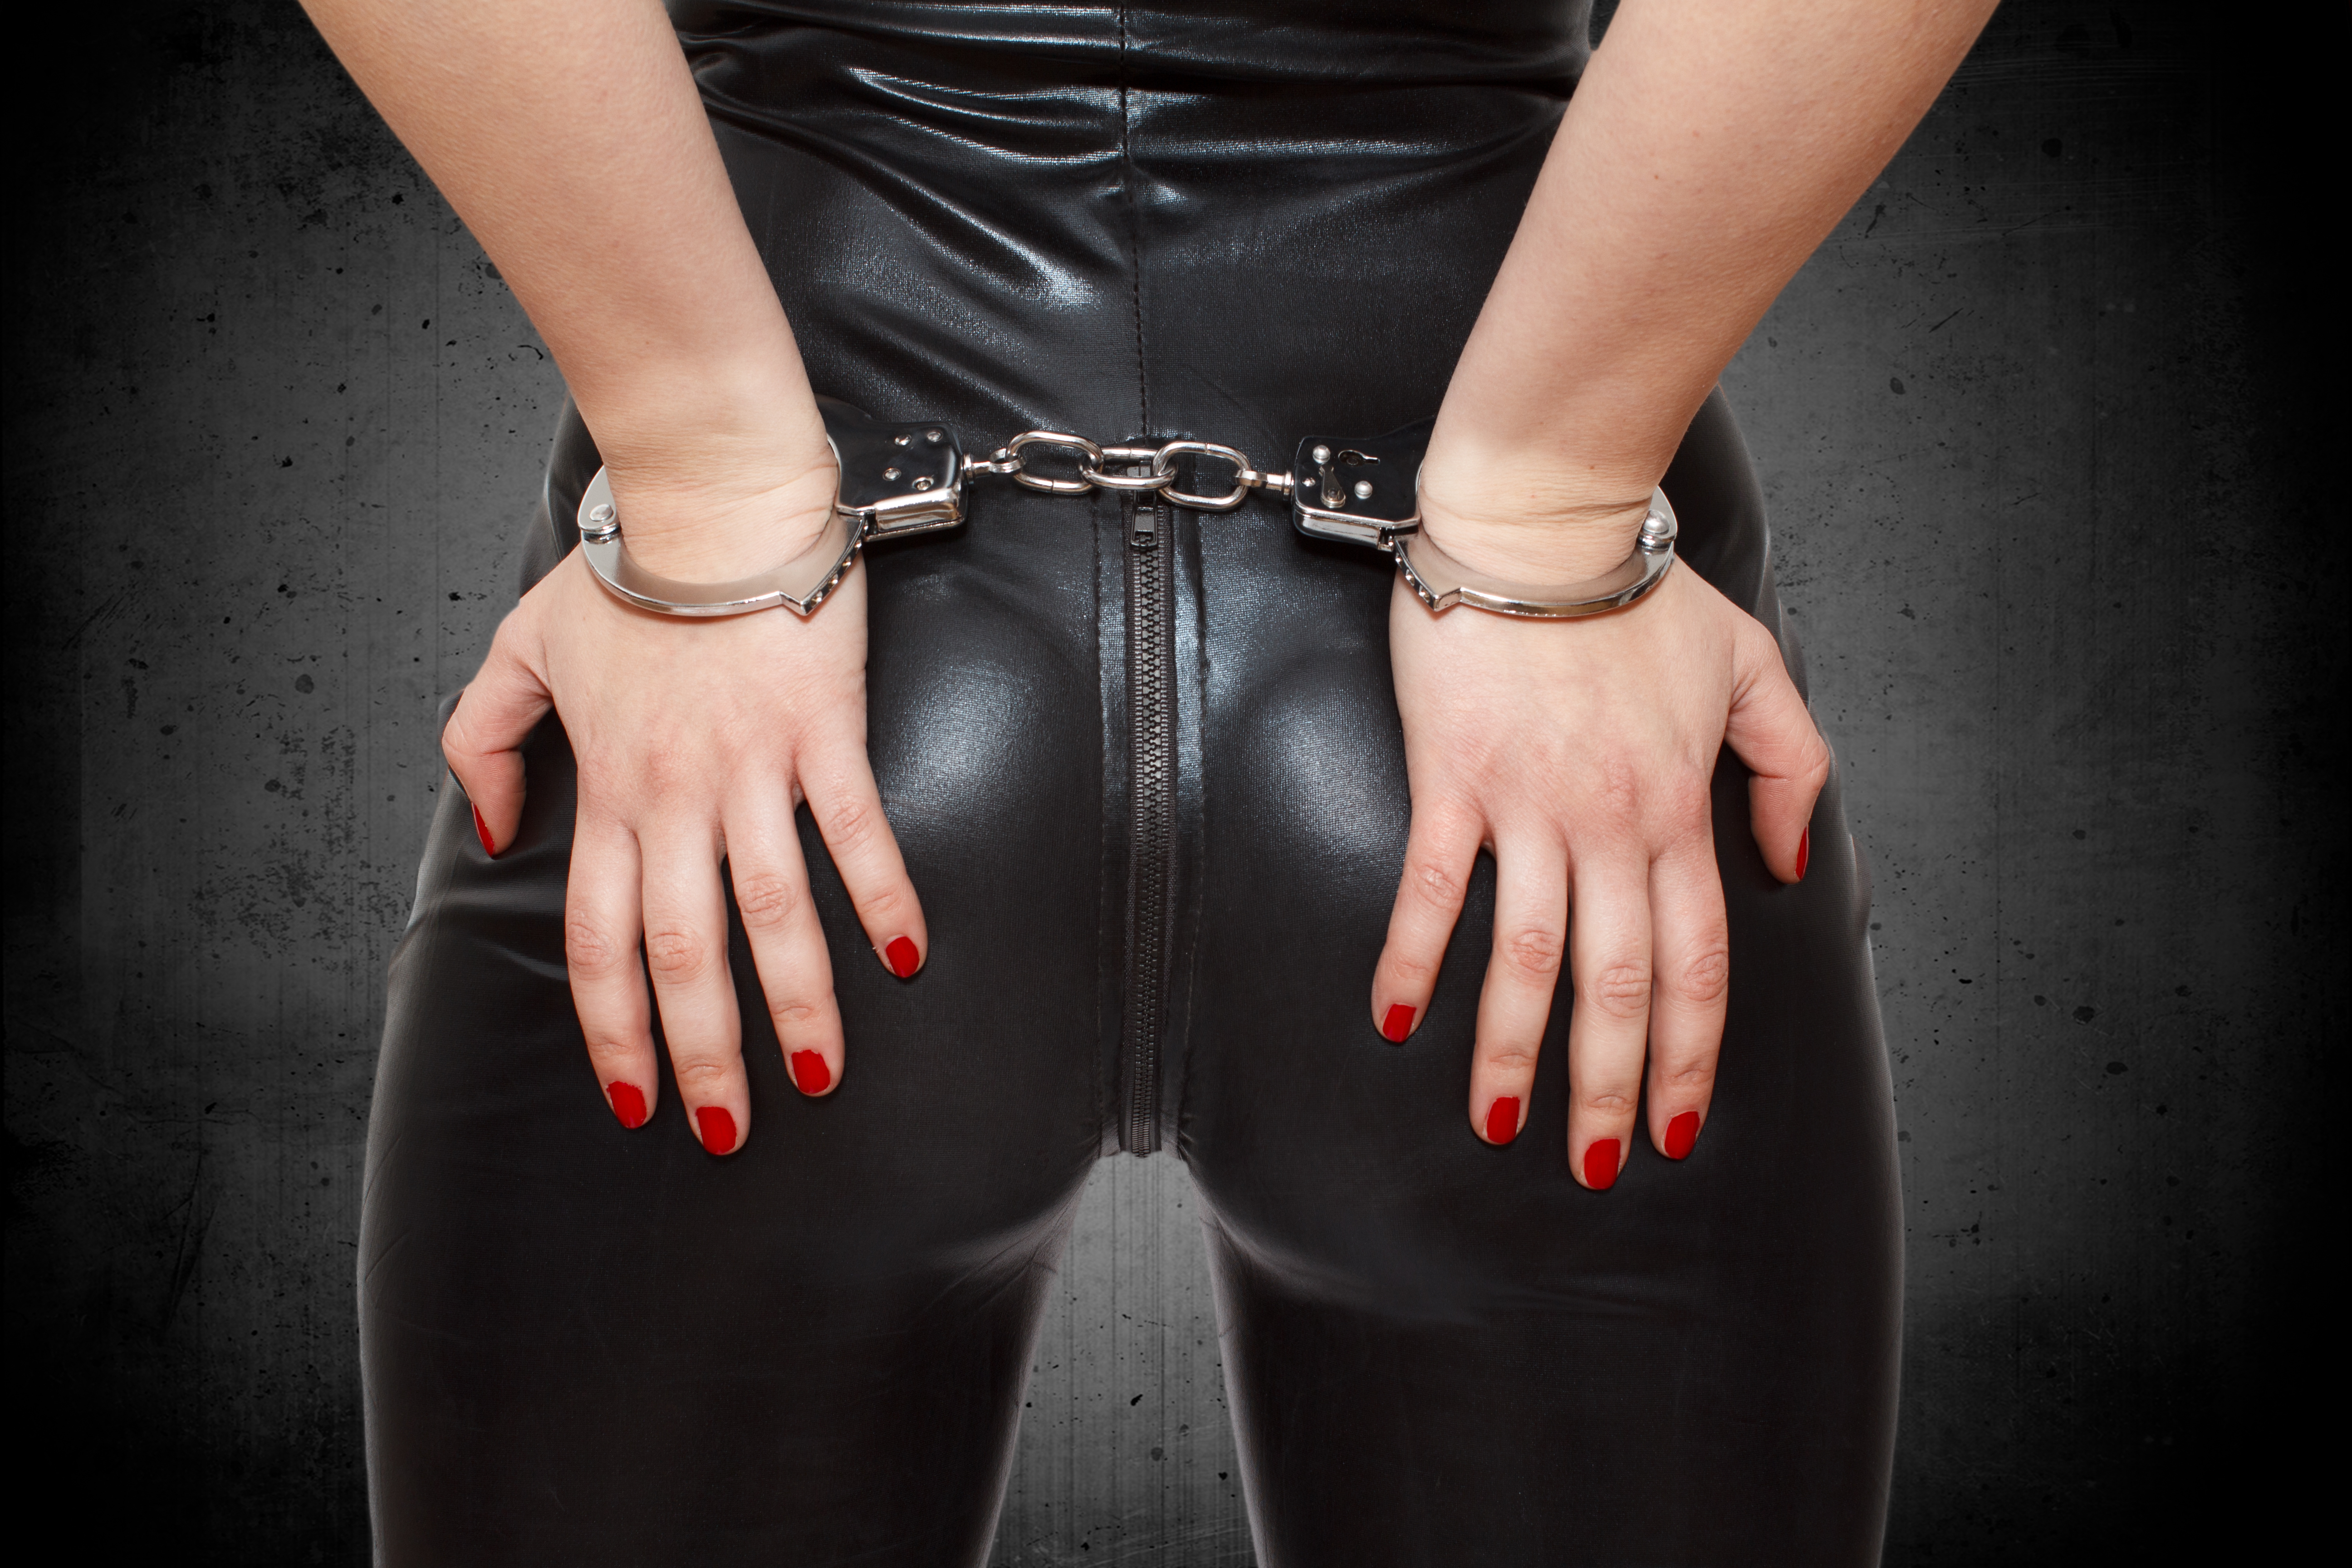 How-to-Bring-BDSM-up-with-your-partner.jpg